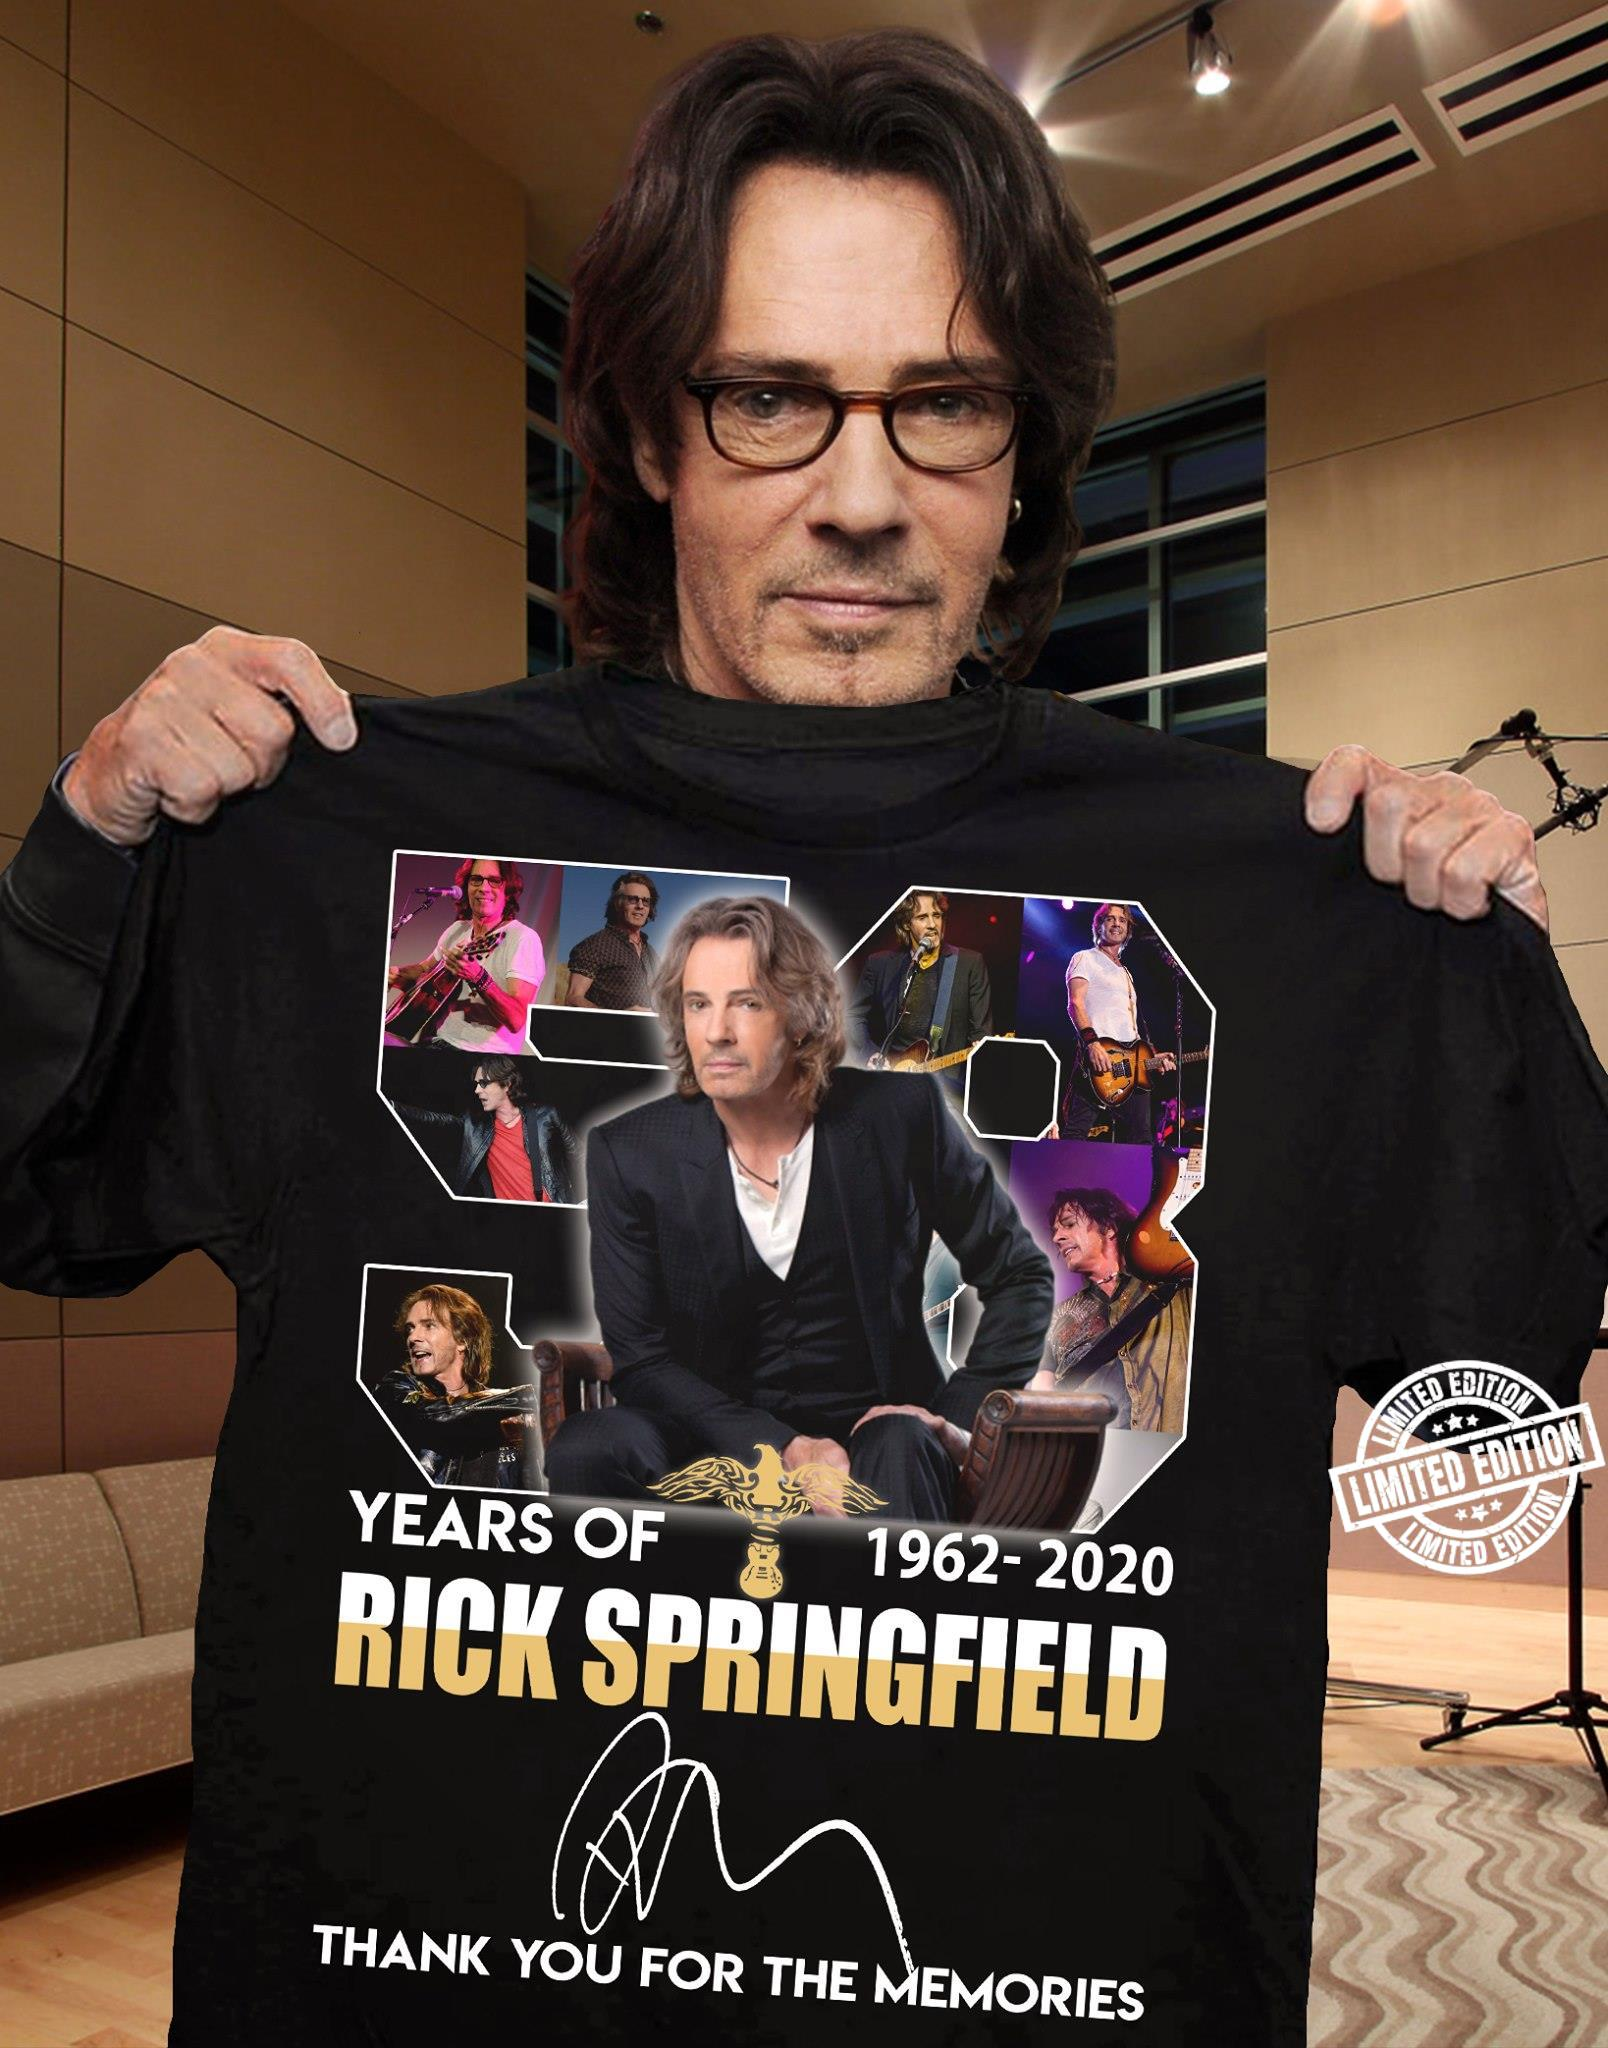 58 years of Rick Springfield 1962-2020 thank you for the memories shirt